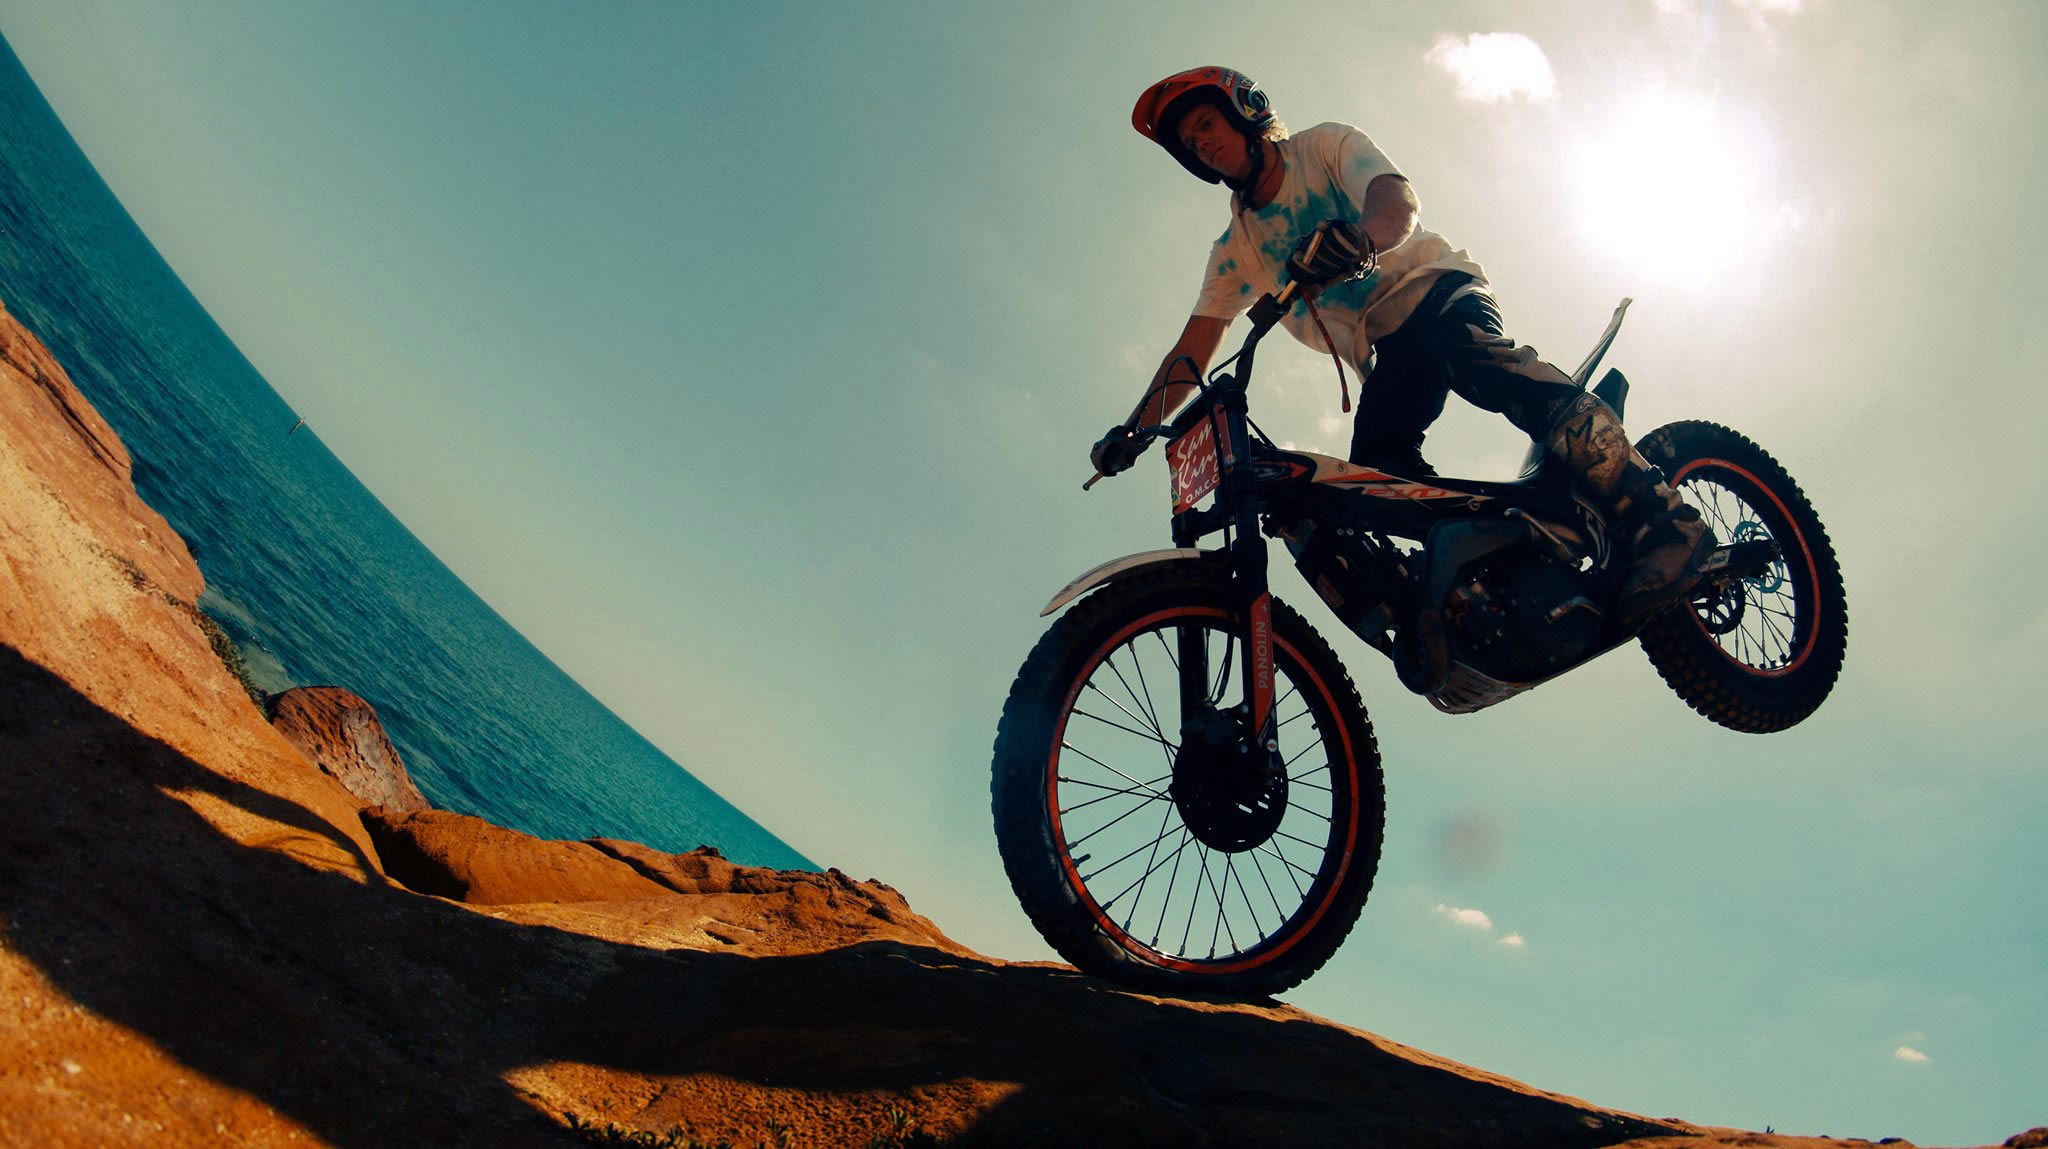 Sam King on a trials bike in Australia.